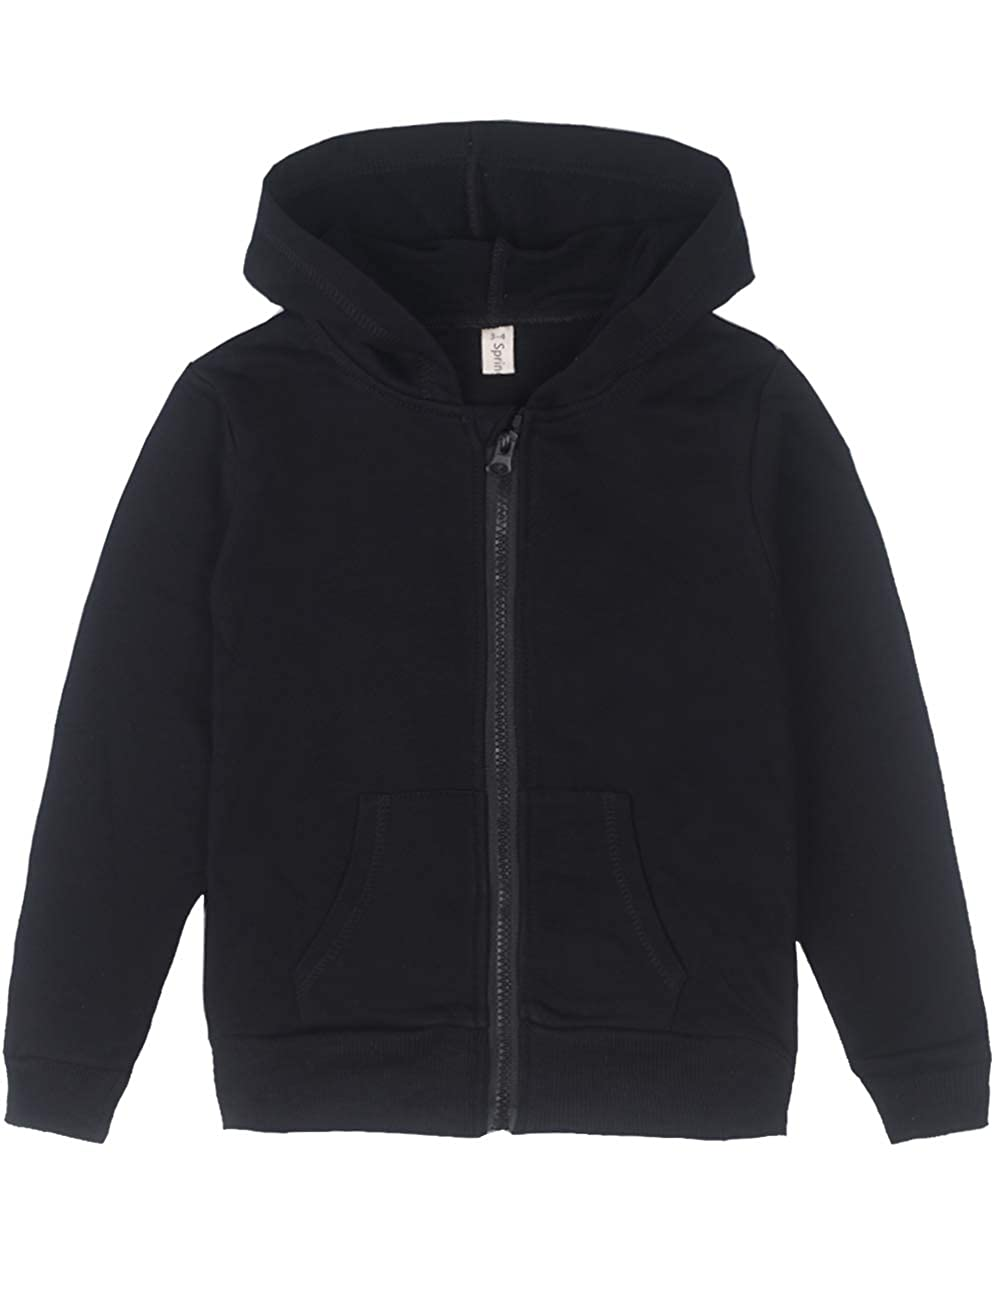 Spring&Gege Youth Solid Classic Hoodies Soft Hooded Sweatshirts for Children (3-12 Years) 51mUi4cbK9L